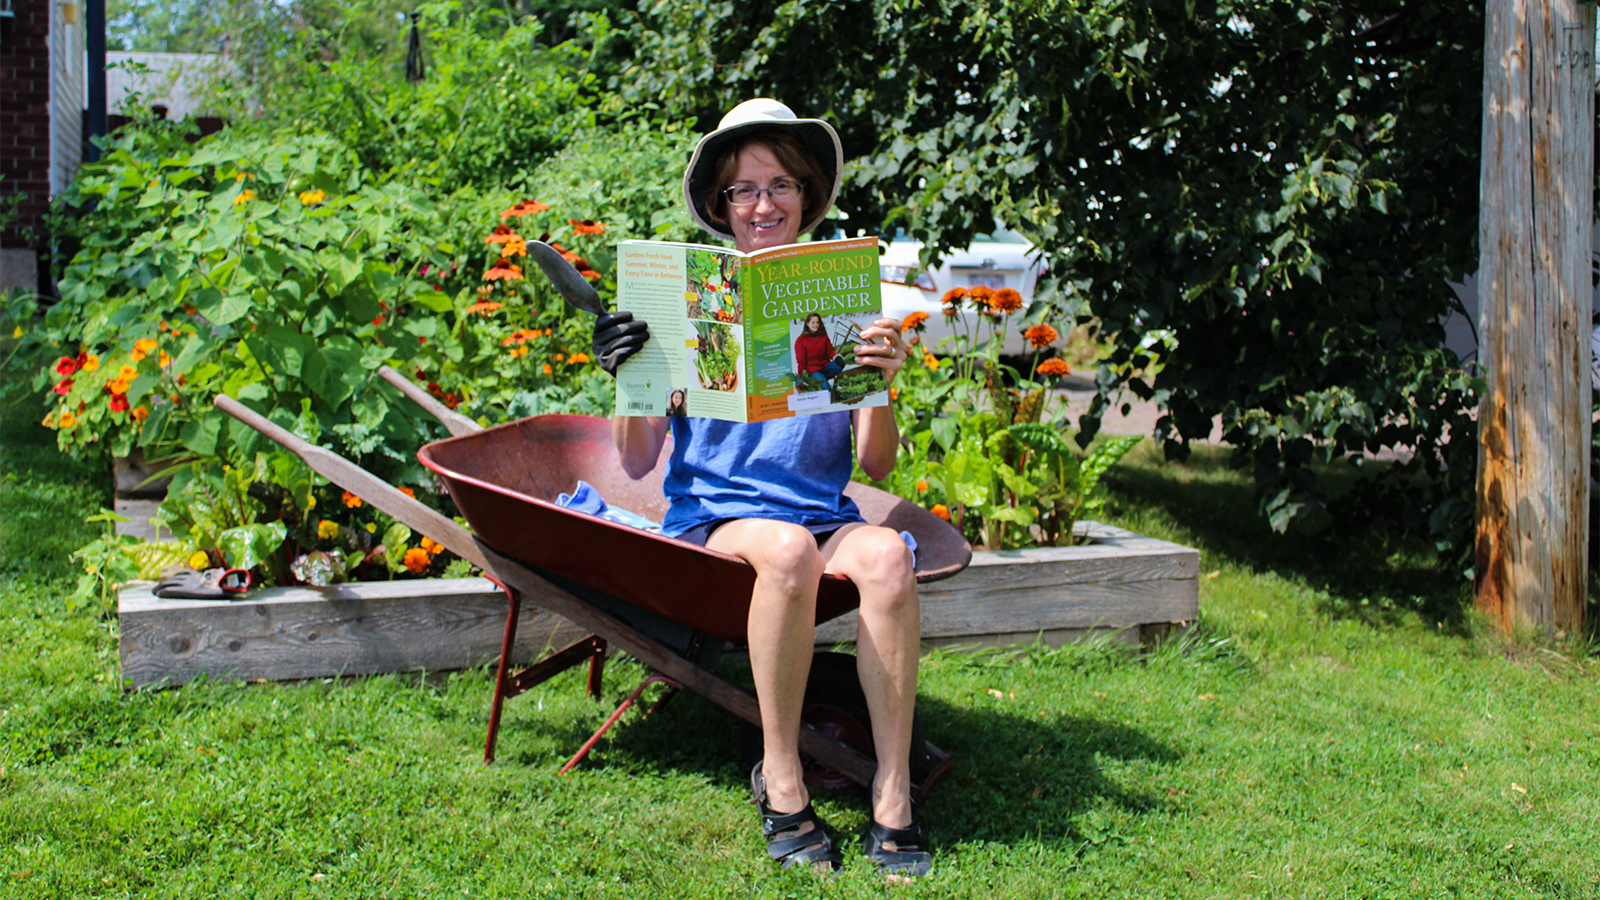 karen rogers in a wheelbarrow